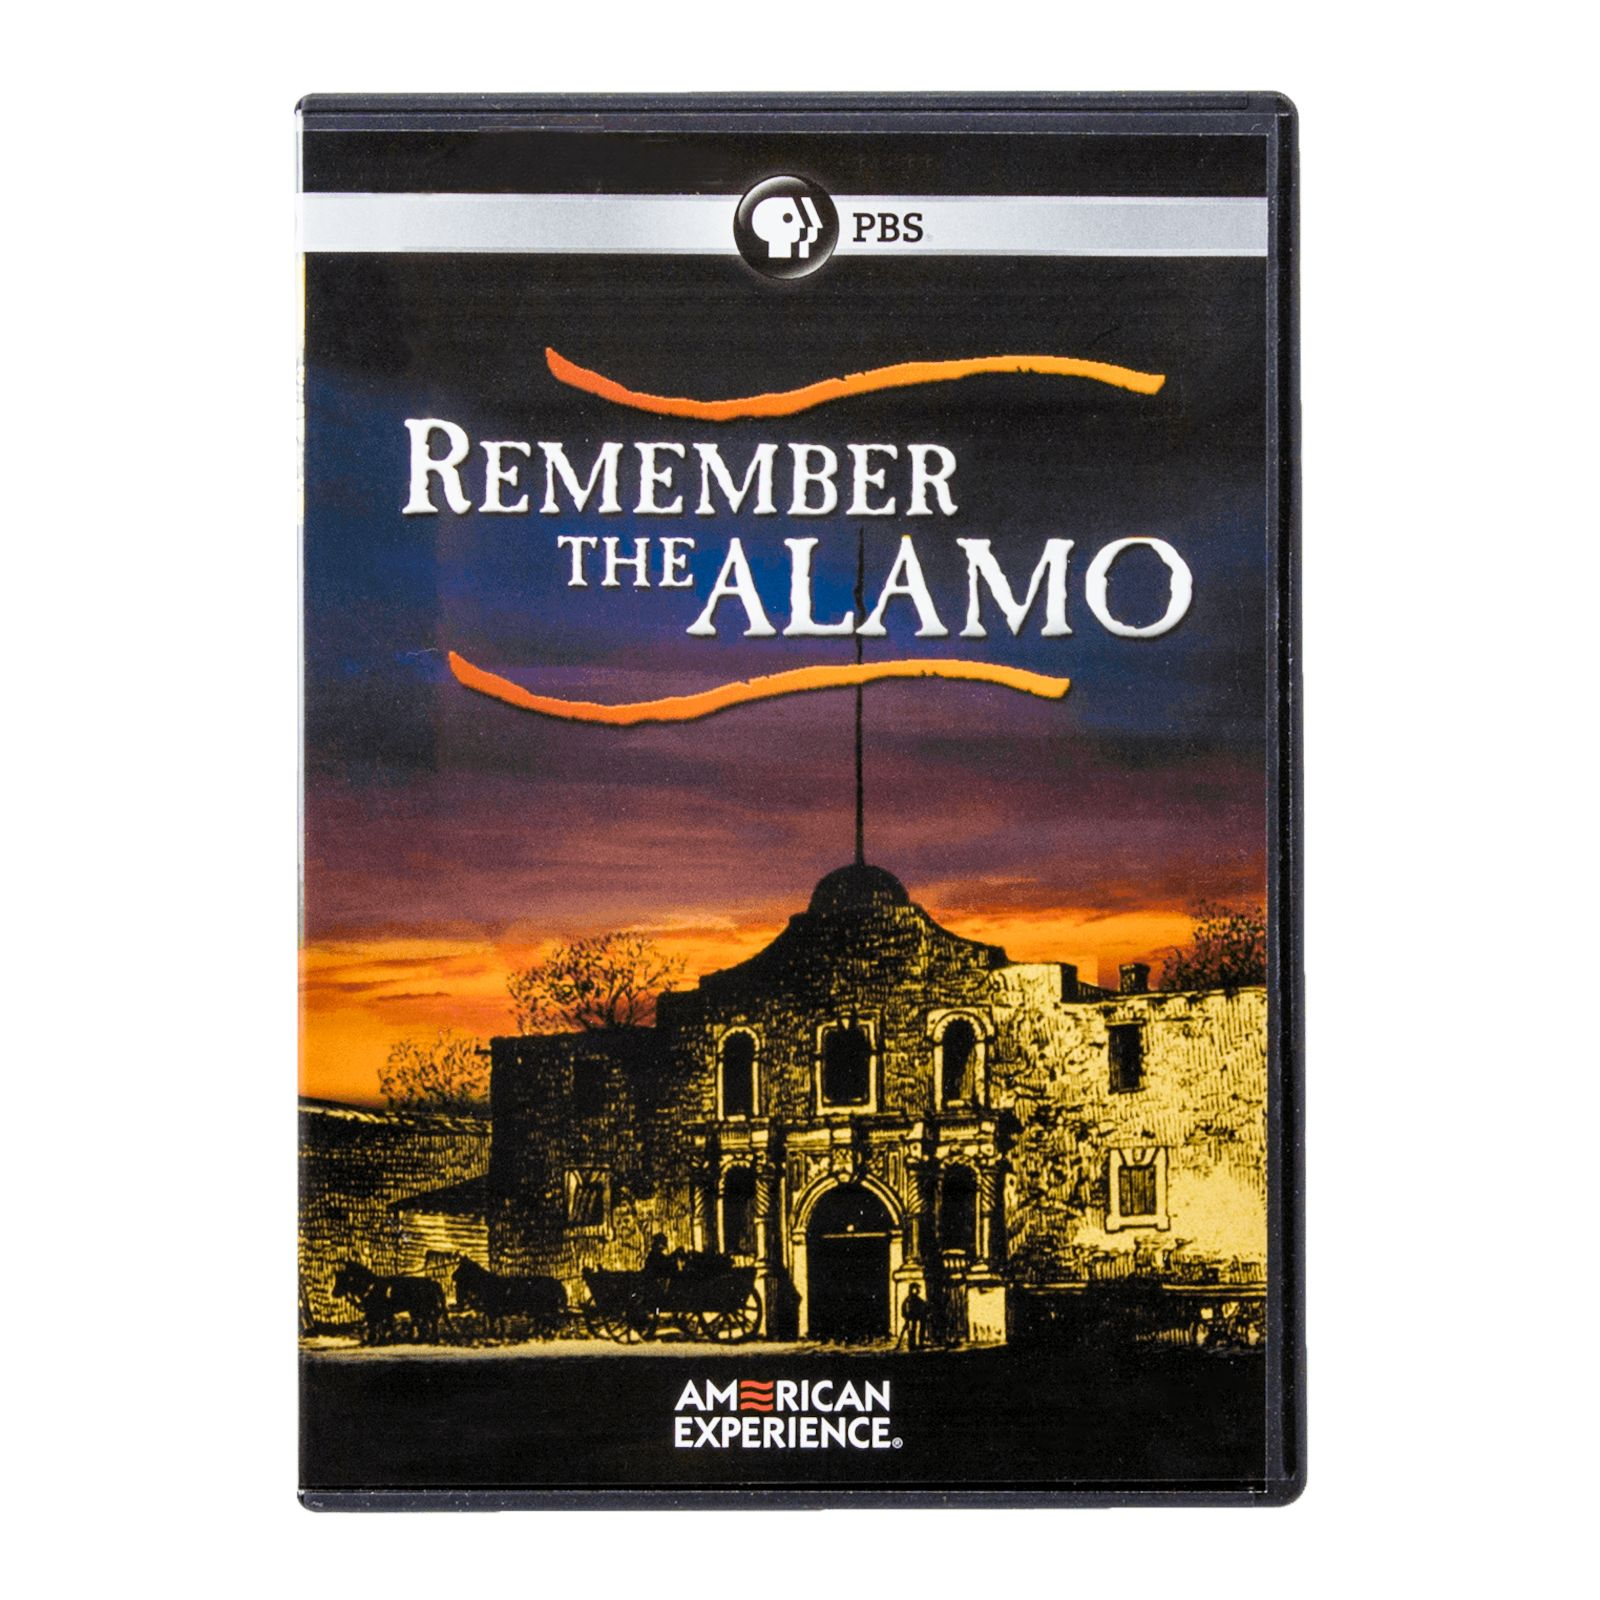 Remember the Alamo DVD